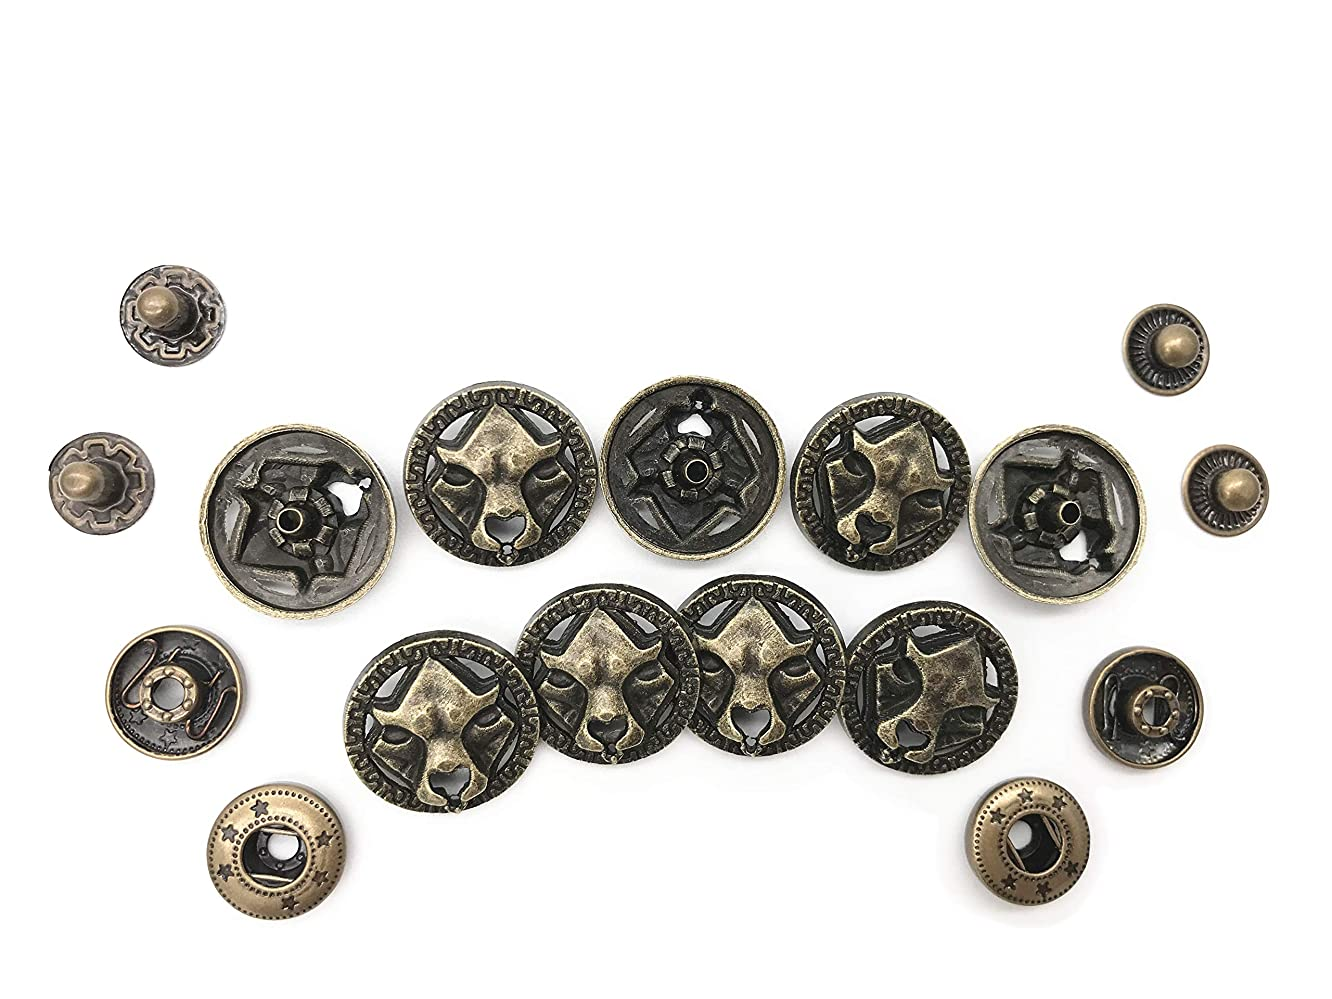 10 Set Bronze Vintage Antique Metal Snap Button Fastener, Bear Pattern Buttons, for Leather Craft DIY Overall Jacket, with Caps Sockets Studs jeddijqxr834038